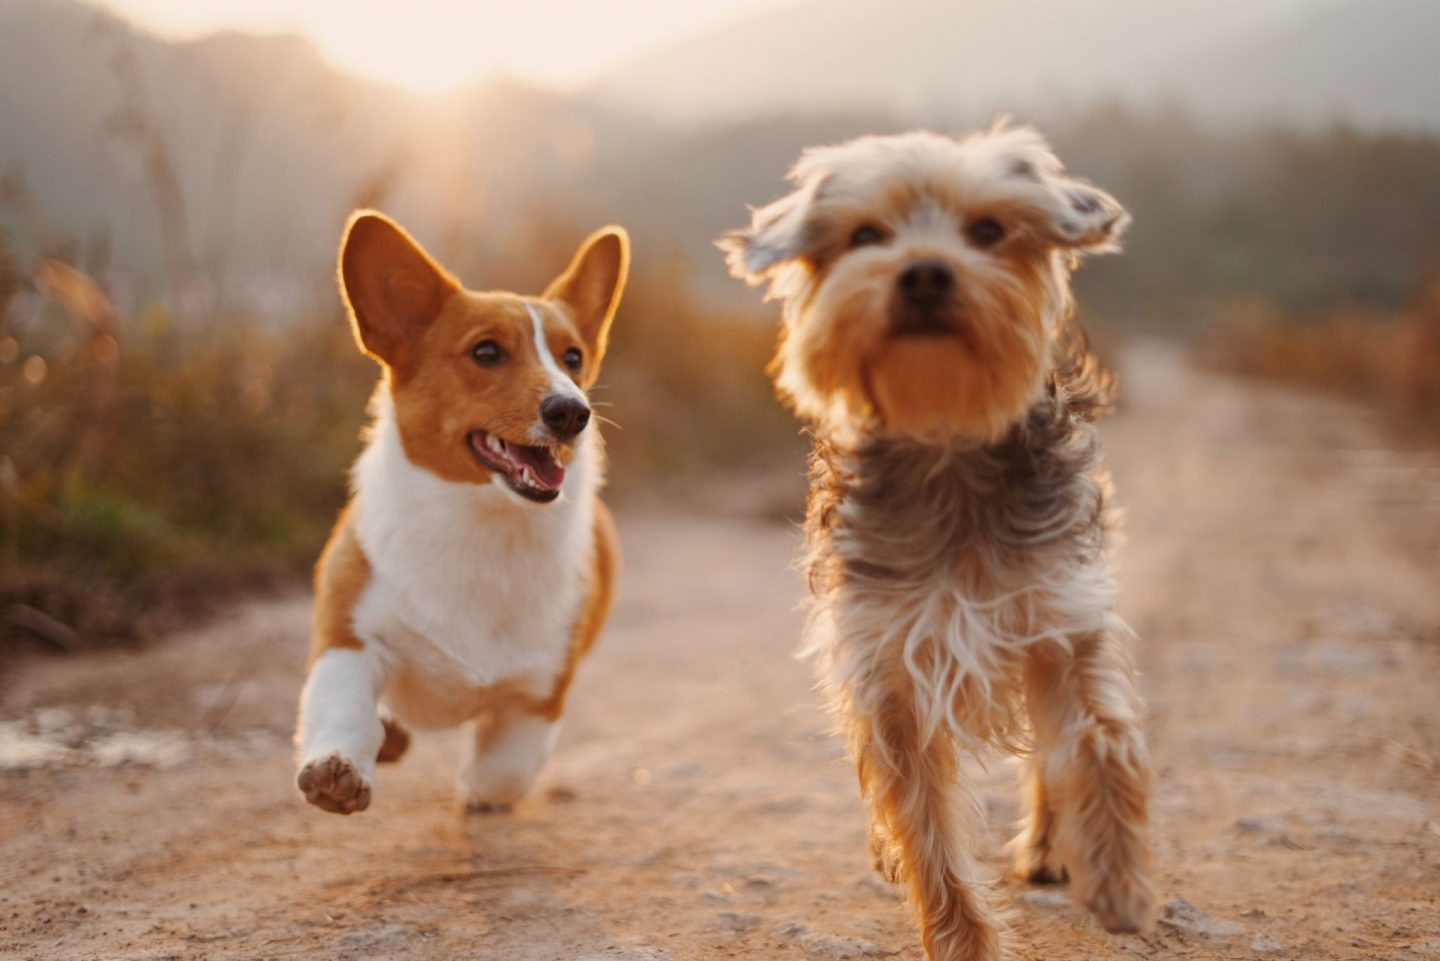 PET INSURANCE IS A THING: HERE'S HOW TO GET IT